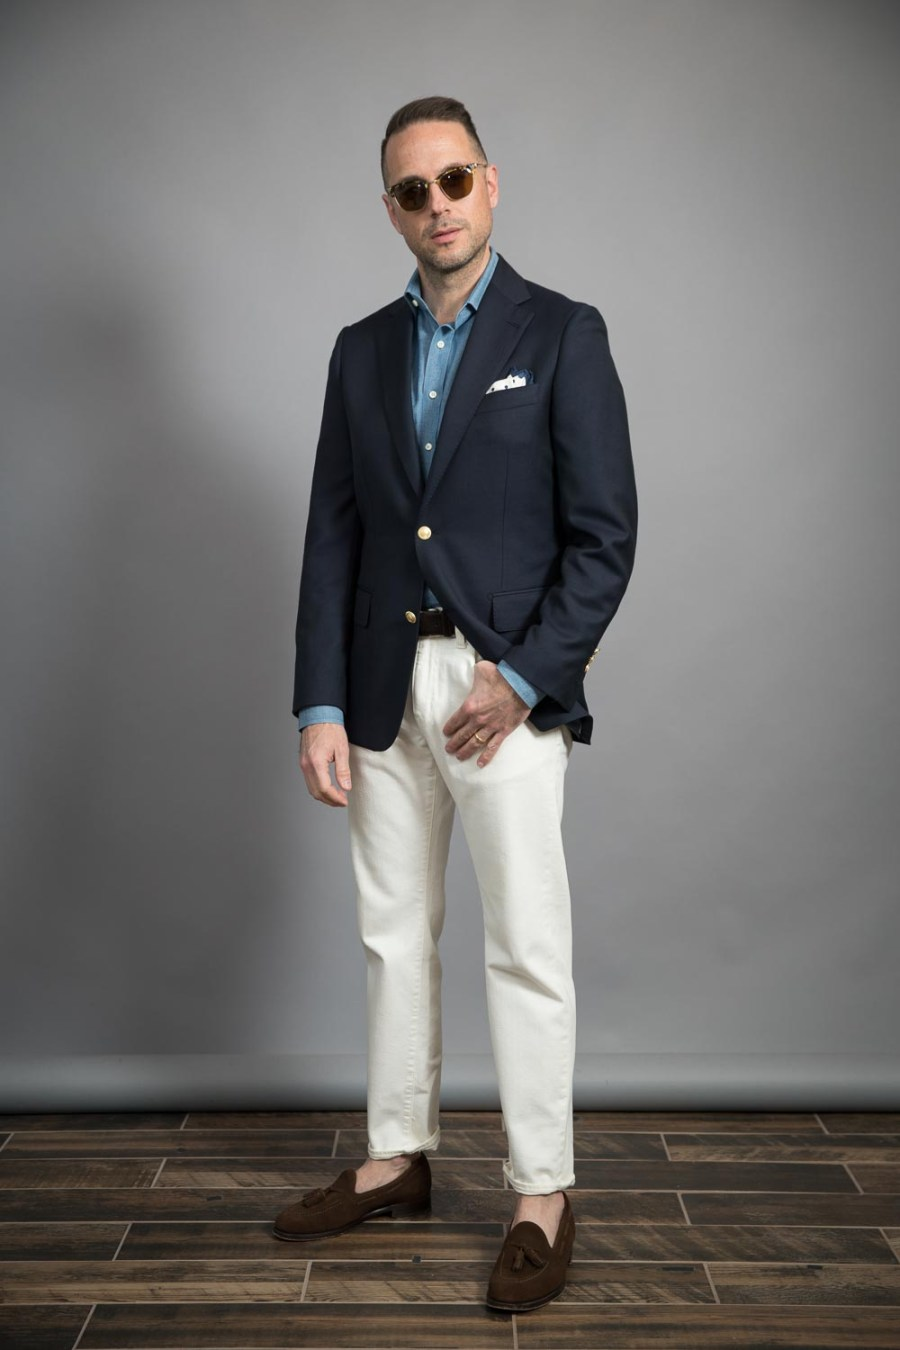 classic-navy-blazer-and-white-jeans-outfit-ideas-for-men-spring-2021